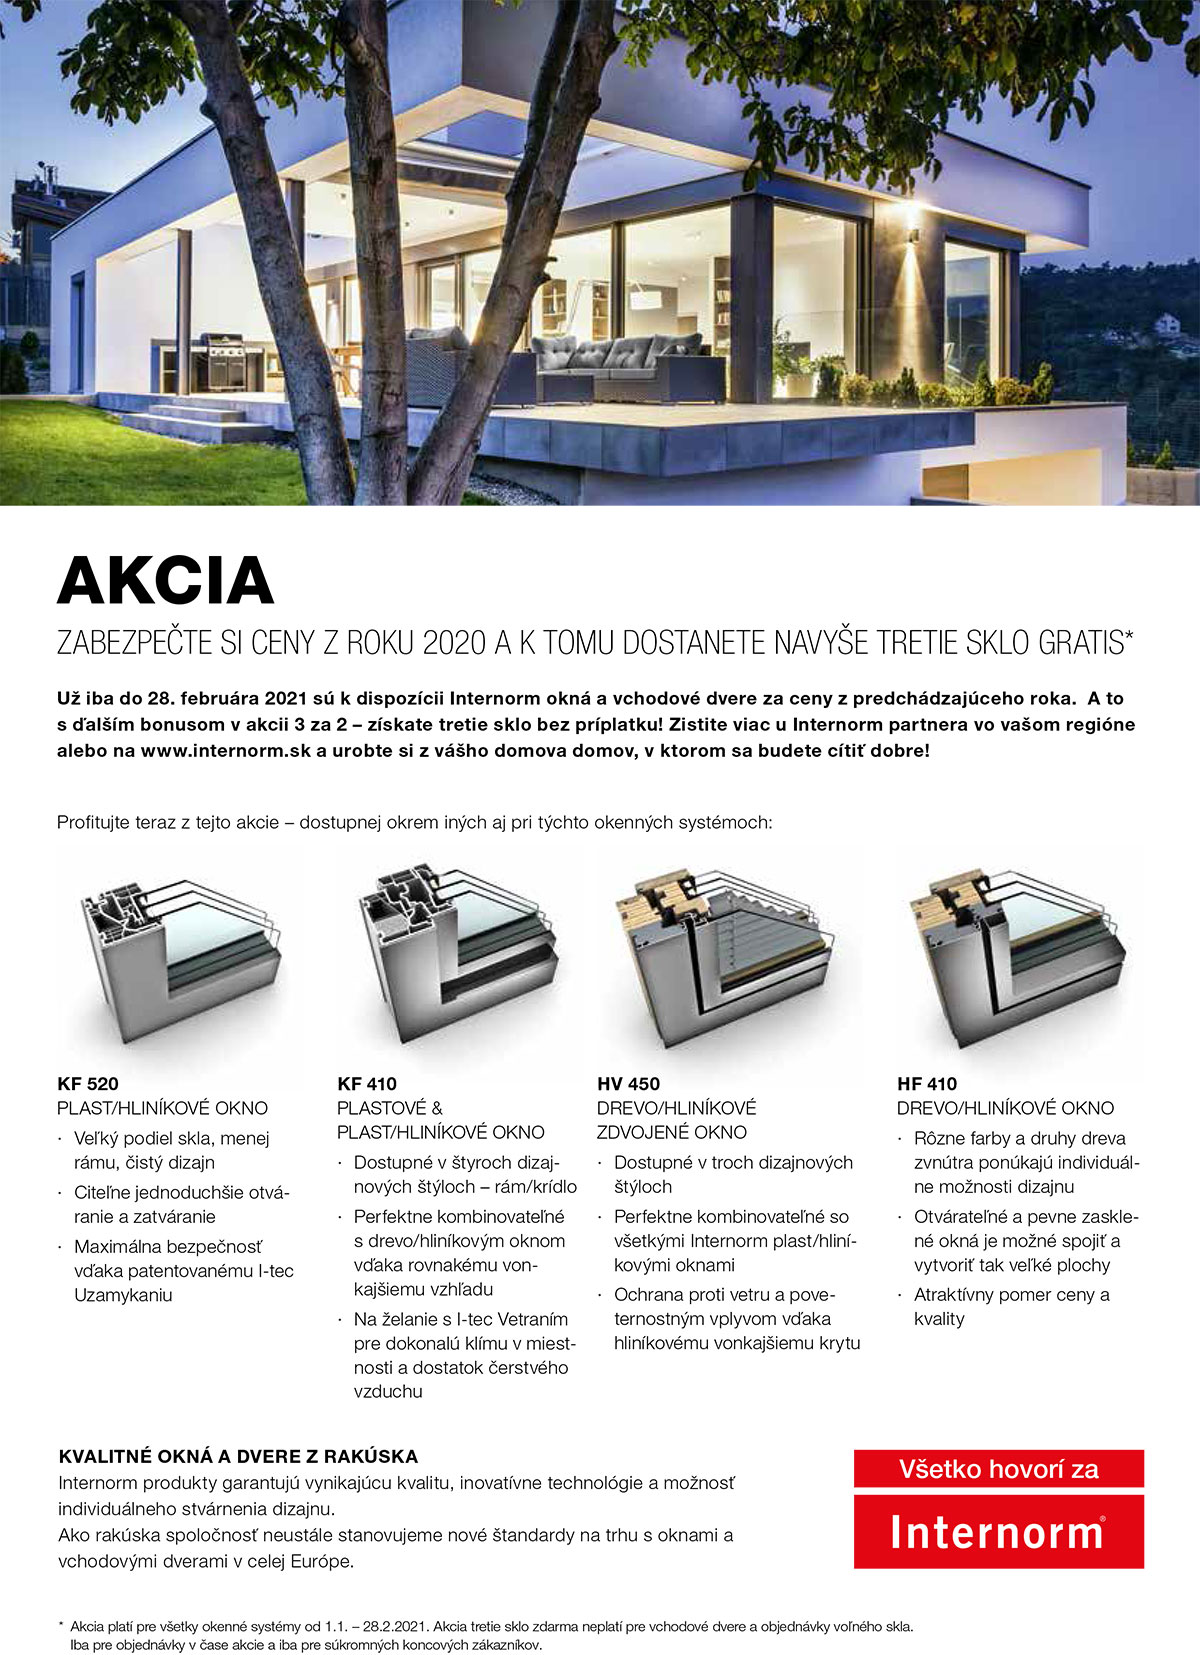 Internorm akcia2021 screen 2